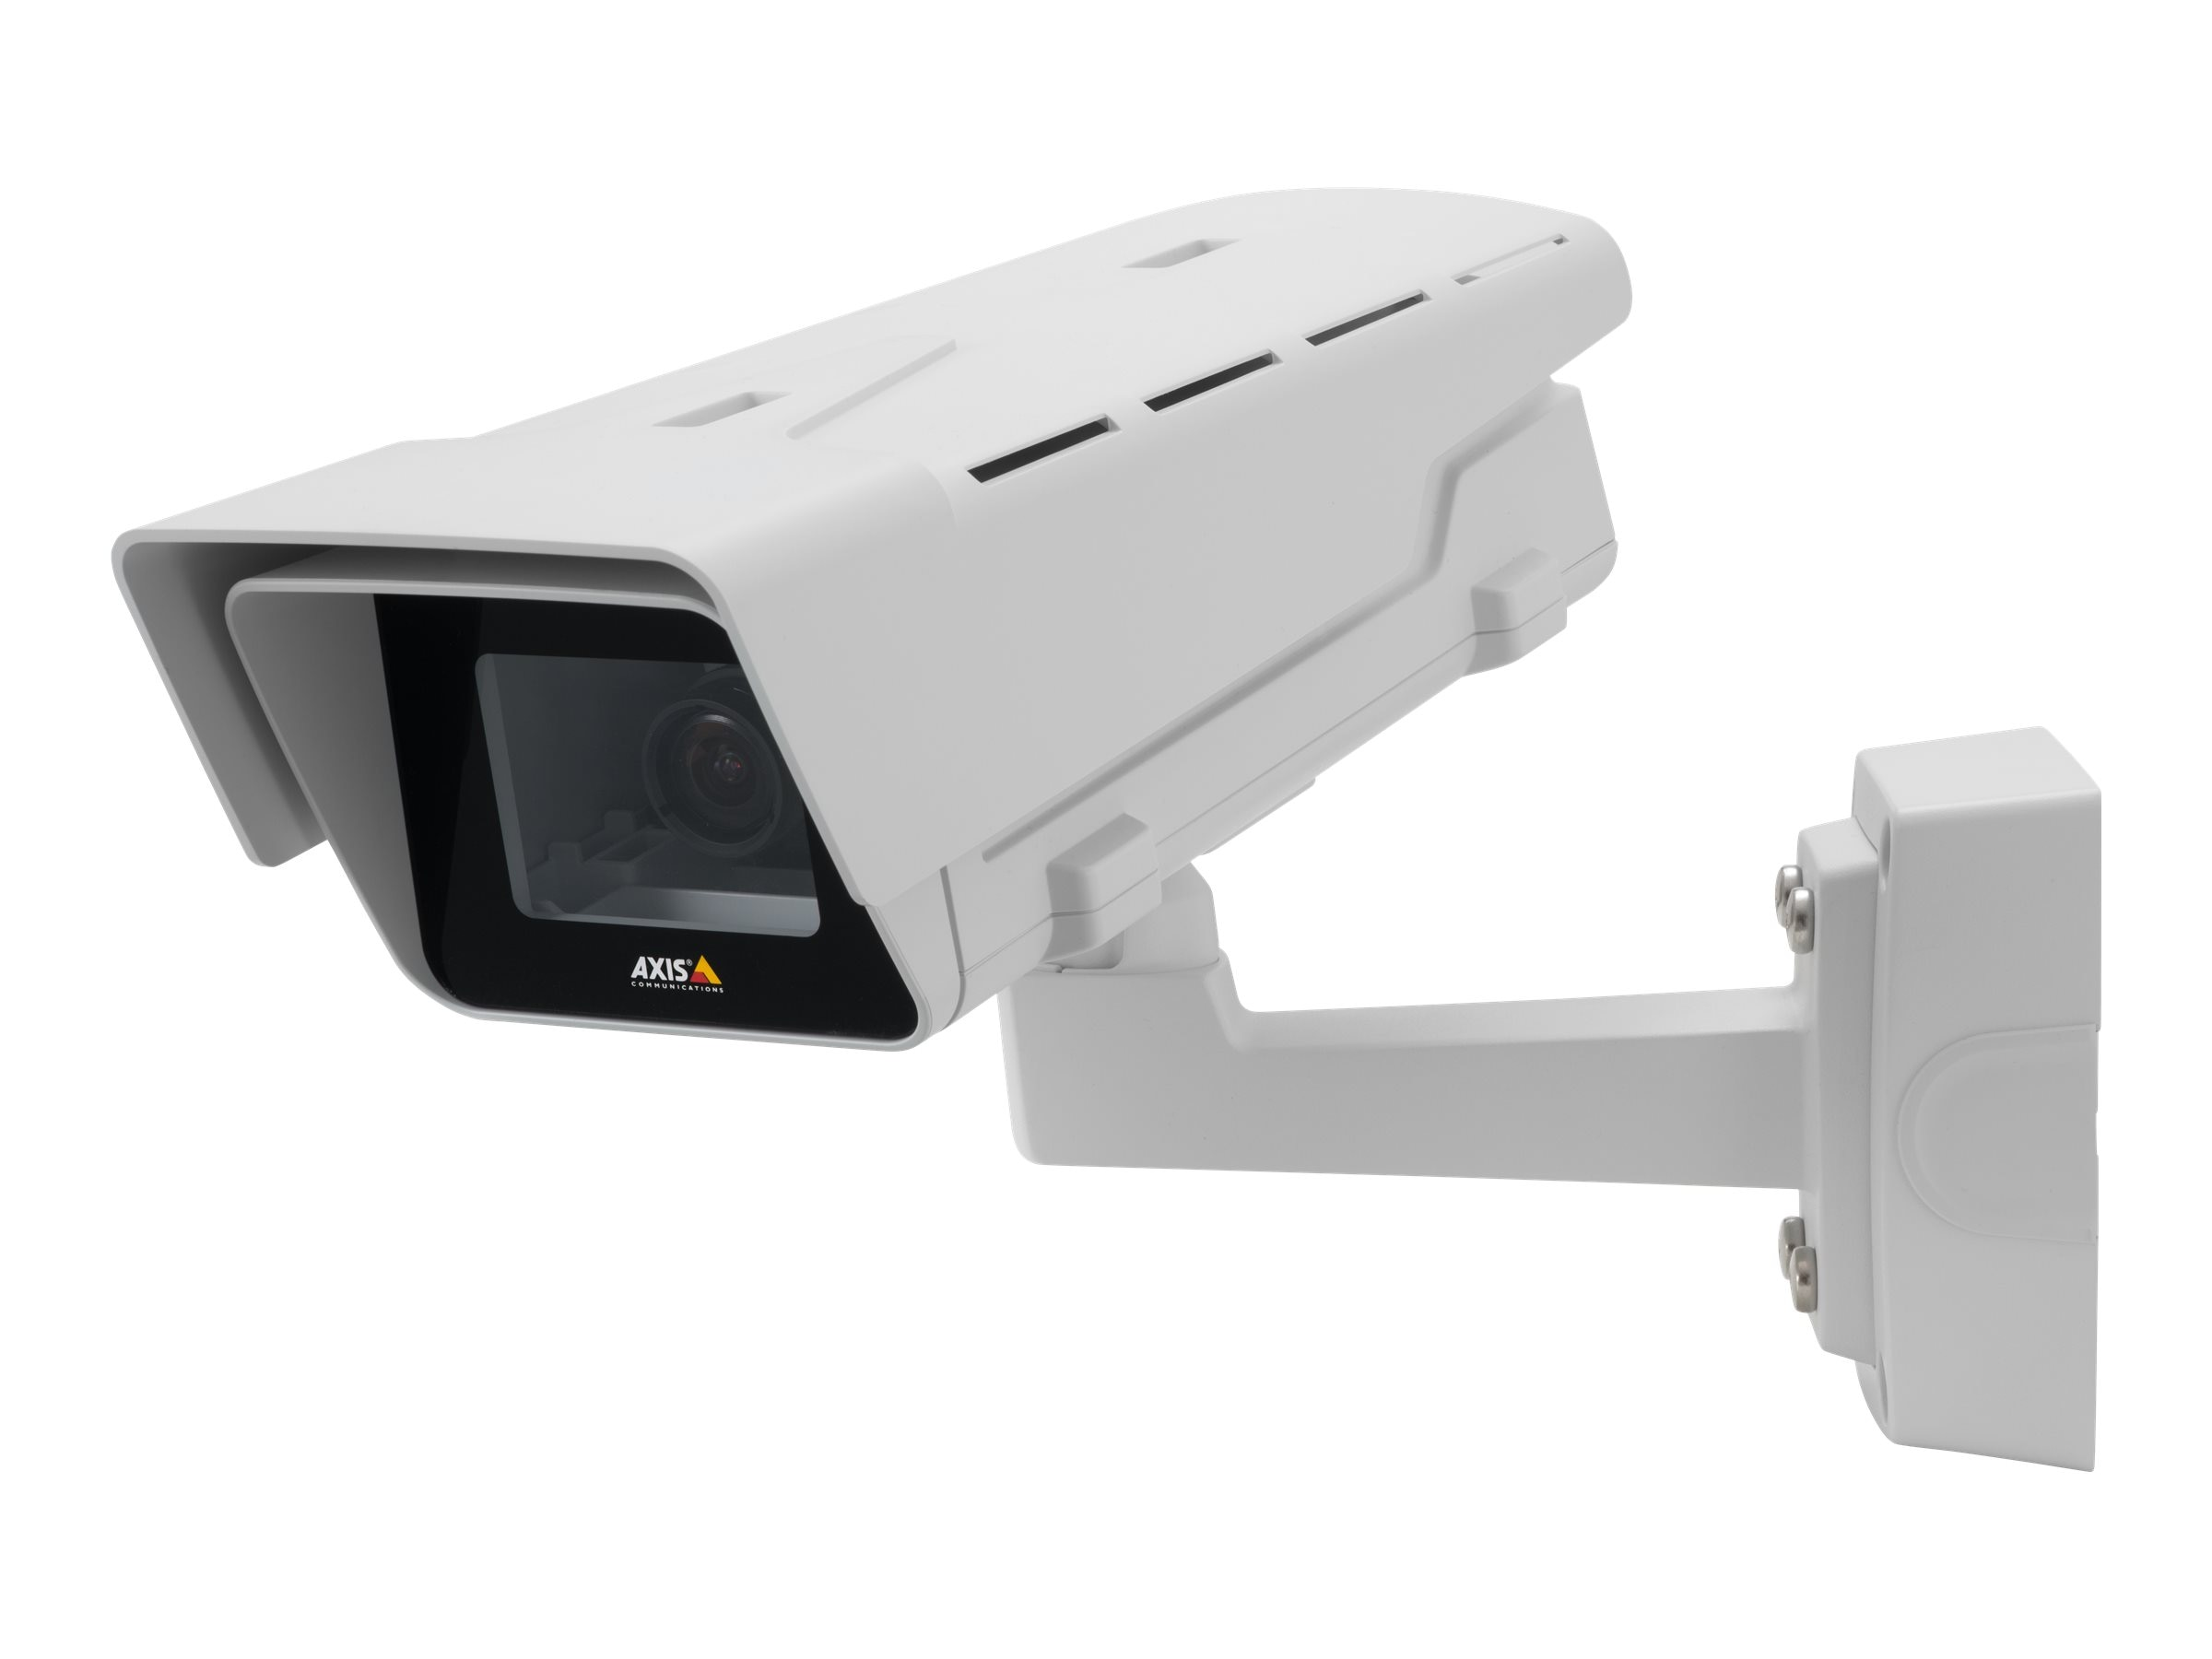 Axis P1365-E 1080p Network Camera, 0740-001, 22902224, Cameras - Security